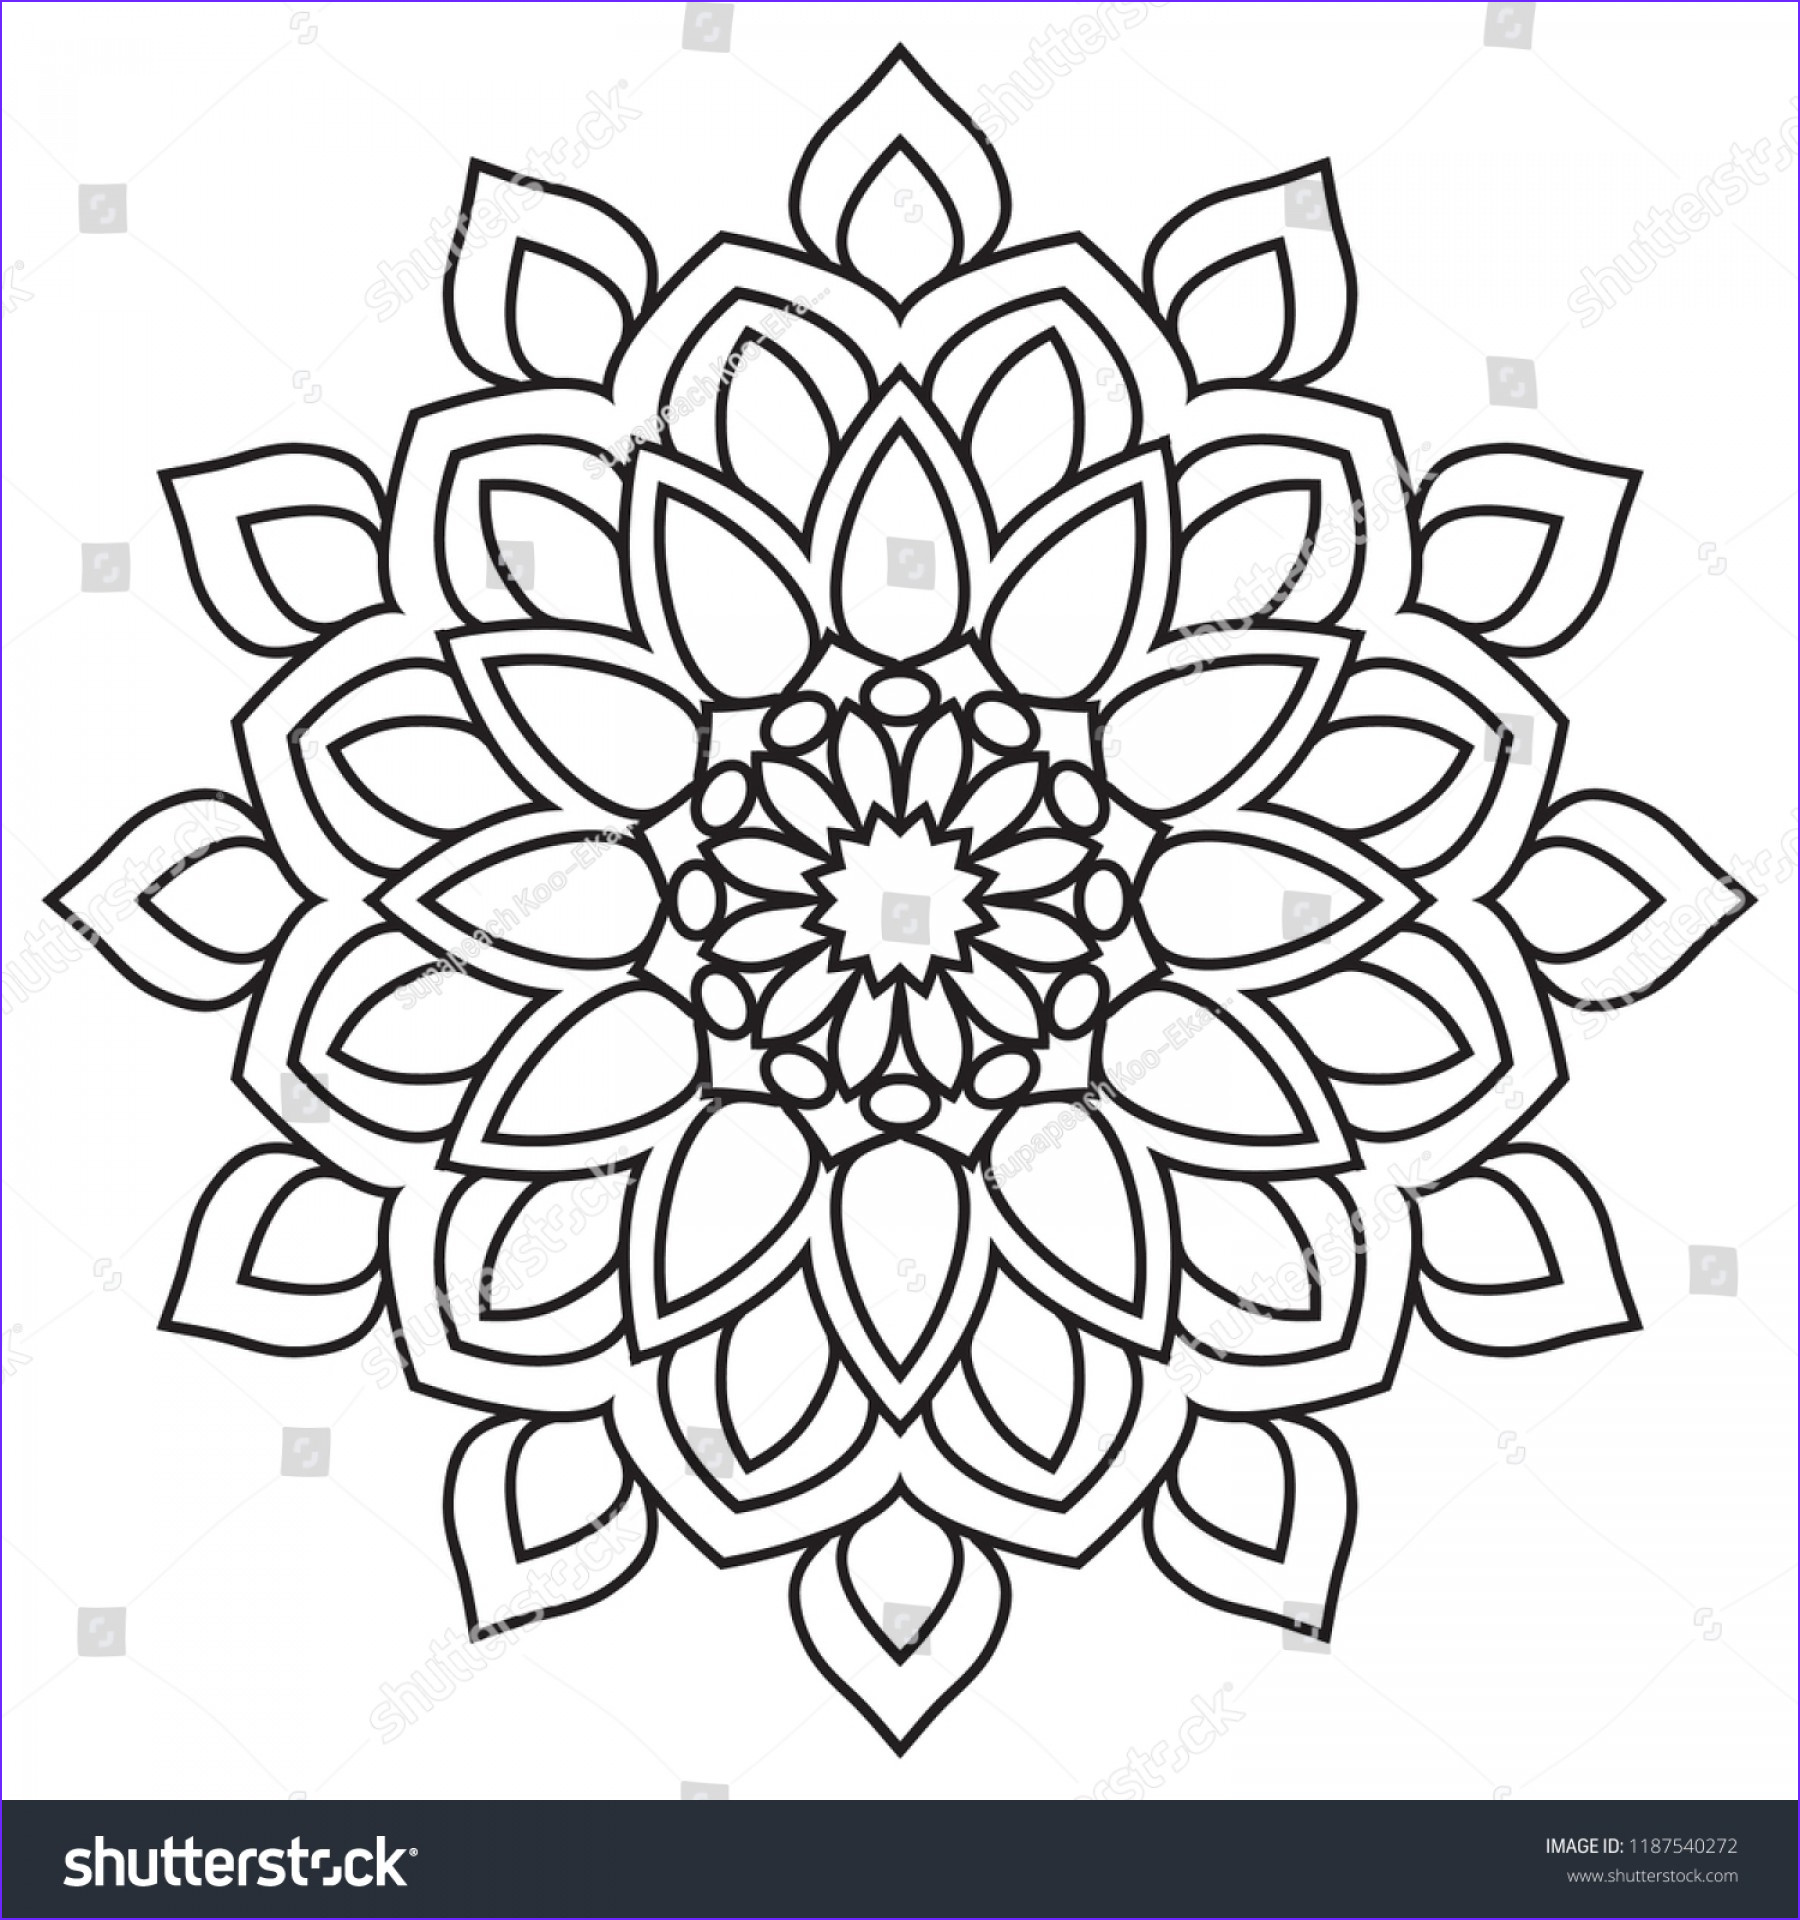 Simple Mandala Coloring Pages Luxury Image Basic Simple Mandala Coloring Page Easy